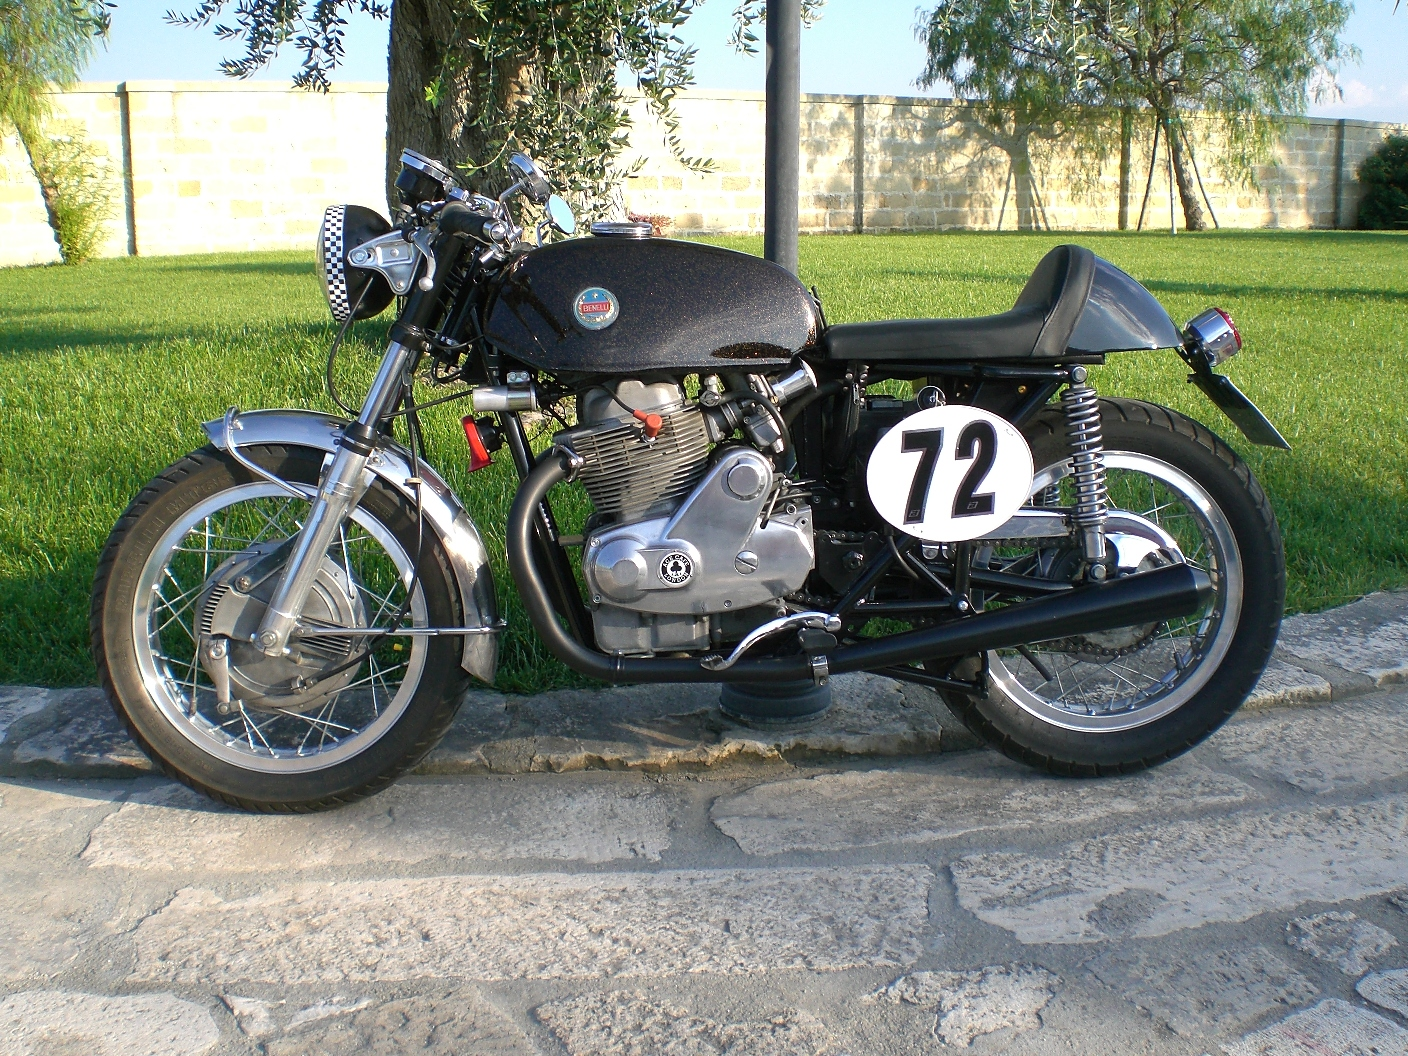 Motorcycle Photo Of The Day